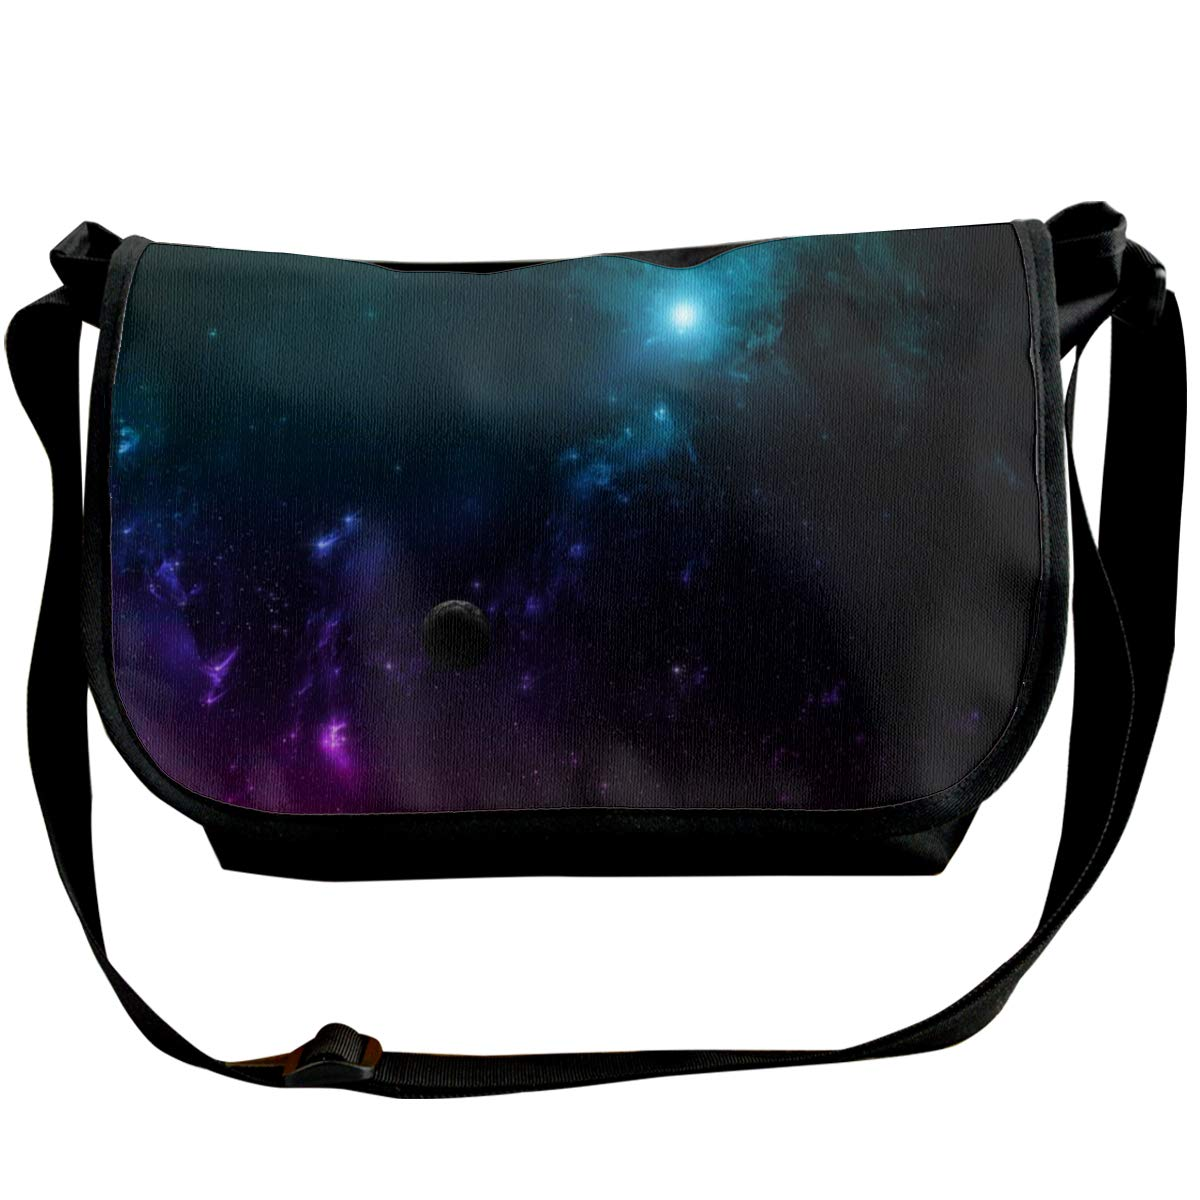 Taslilye Galaxy Universe Space Planets Multi Colored Personalized Wide Crossbody Shoulder Bag For Men And Women For Daily Work Or Travel